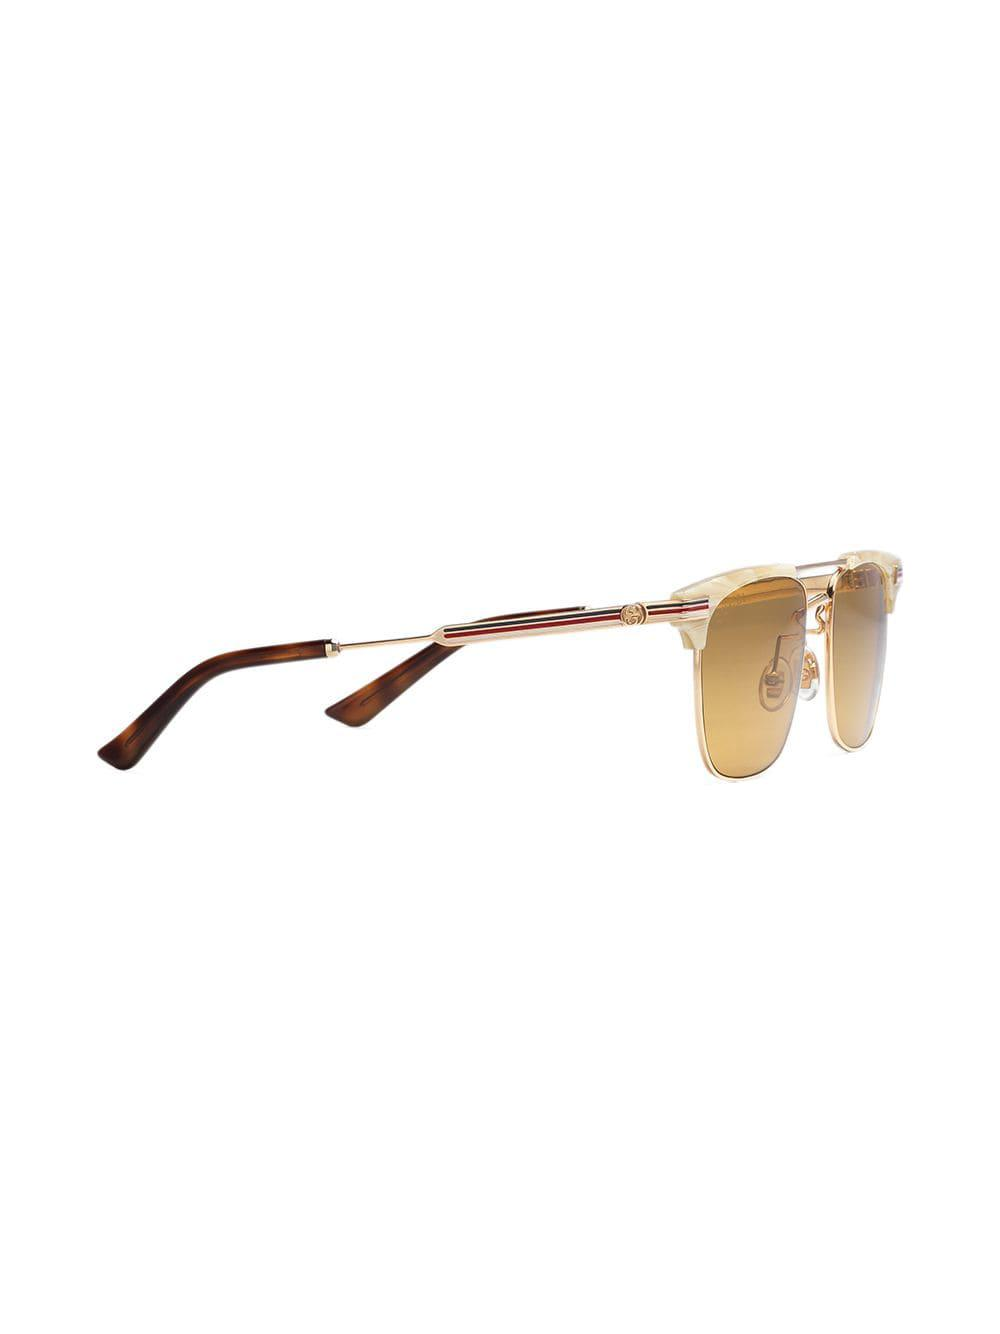 3518659f296 Gucci Square-frame Metal Sunglasses in Metallic for Men - Lyst